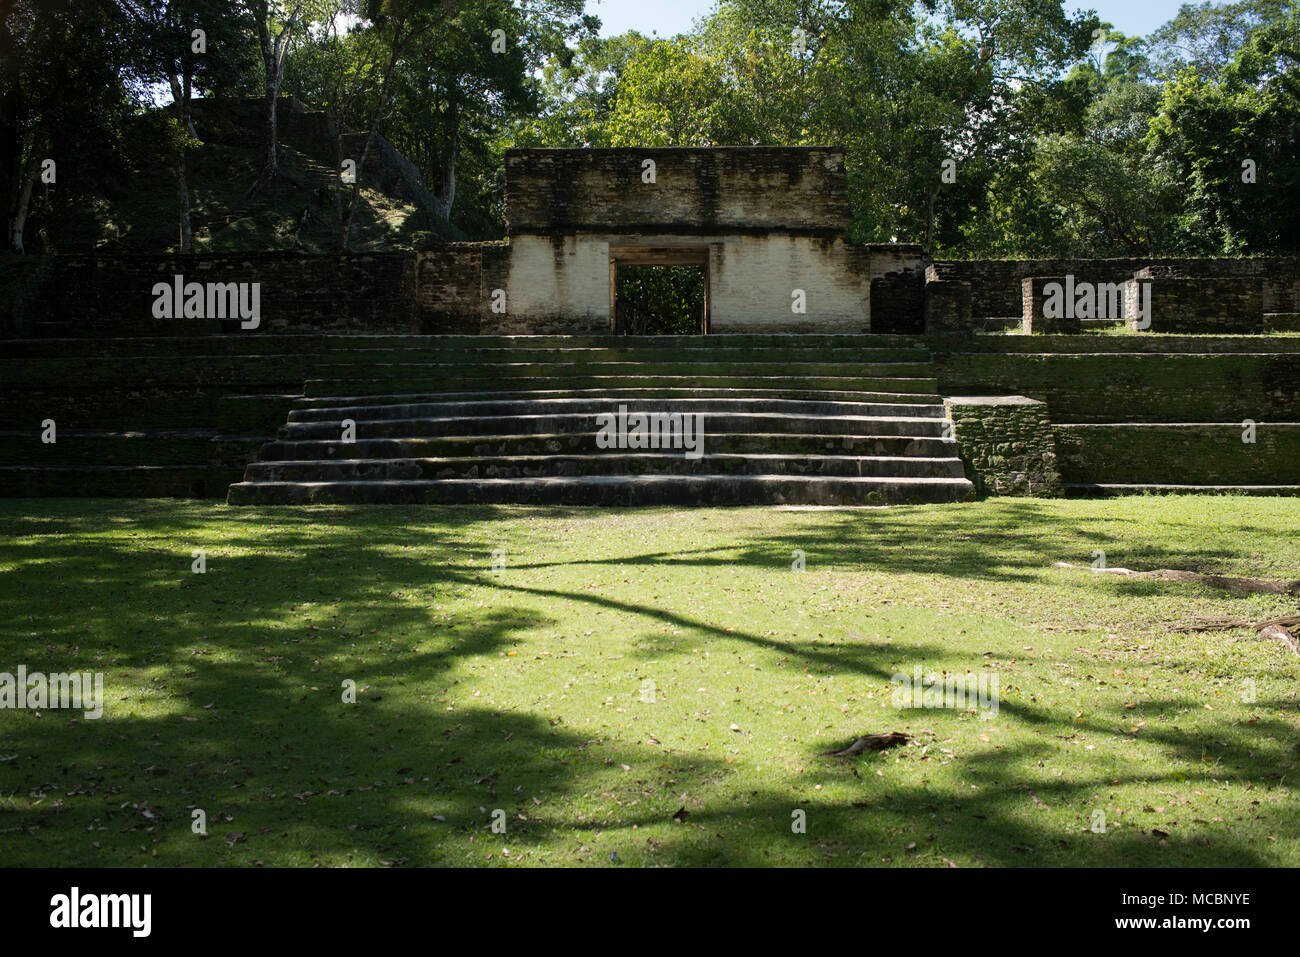 The main courtyard at the ancient Mayan site of Cahal Pech in western Belize. - Stock Image